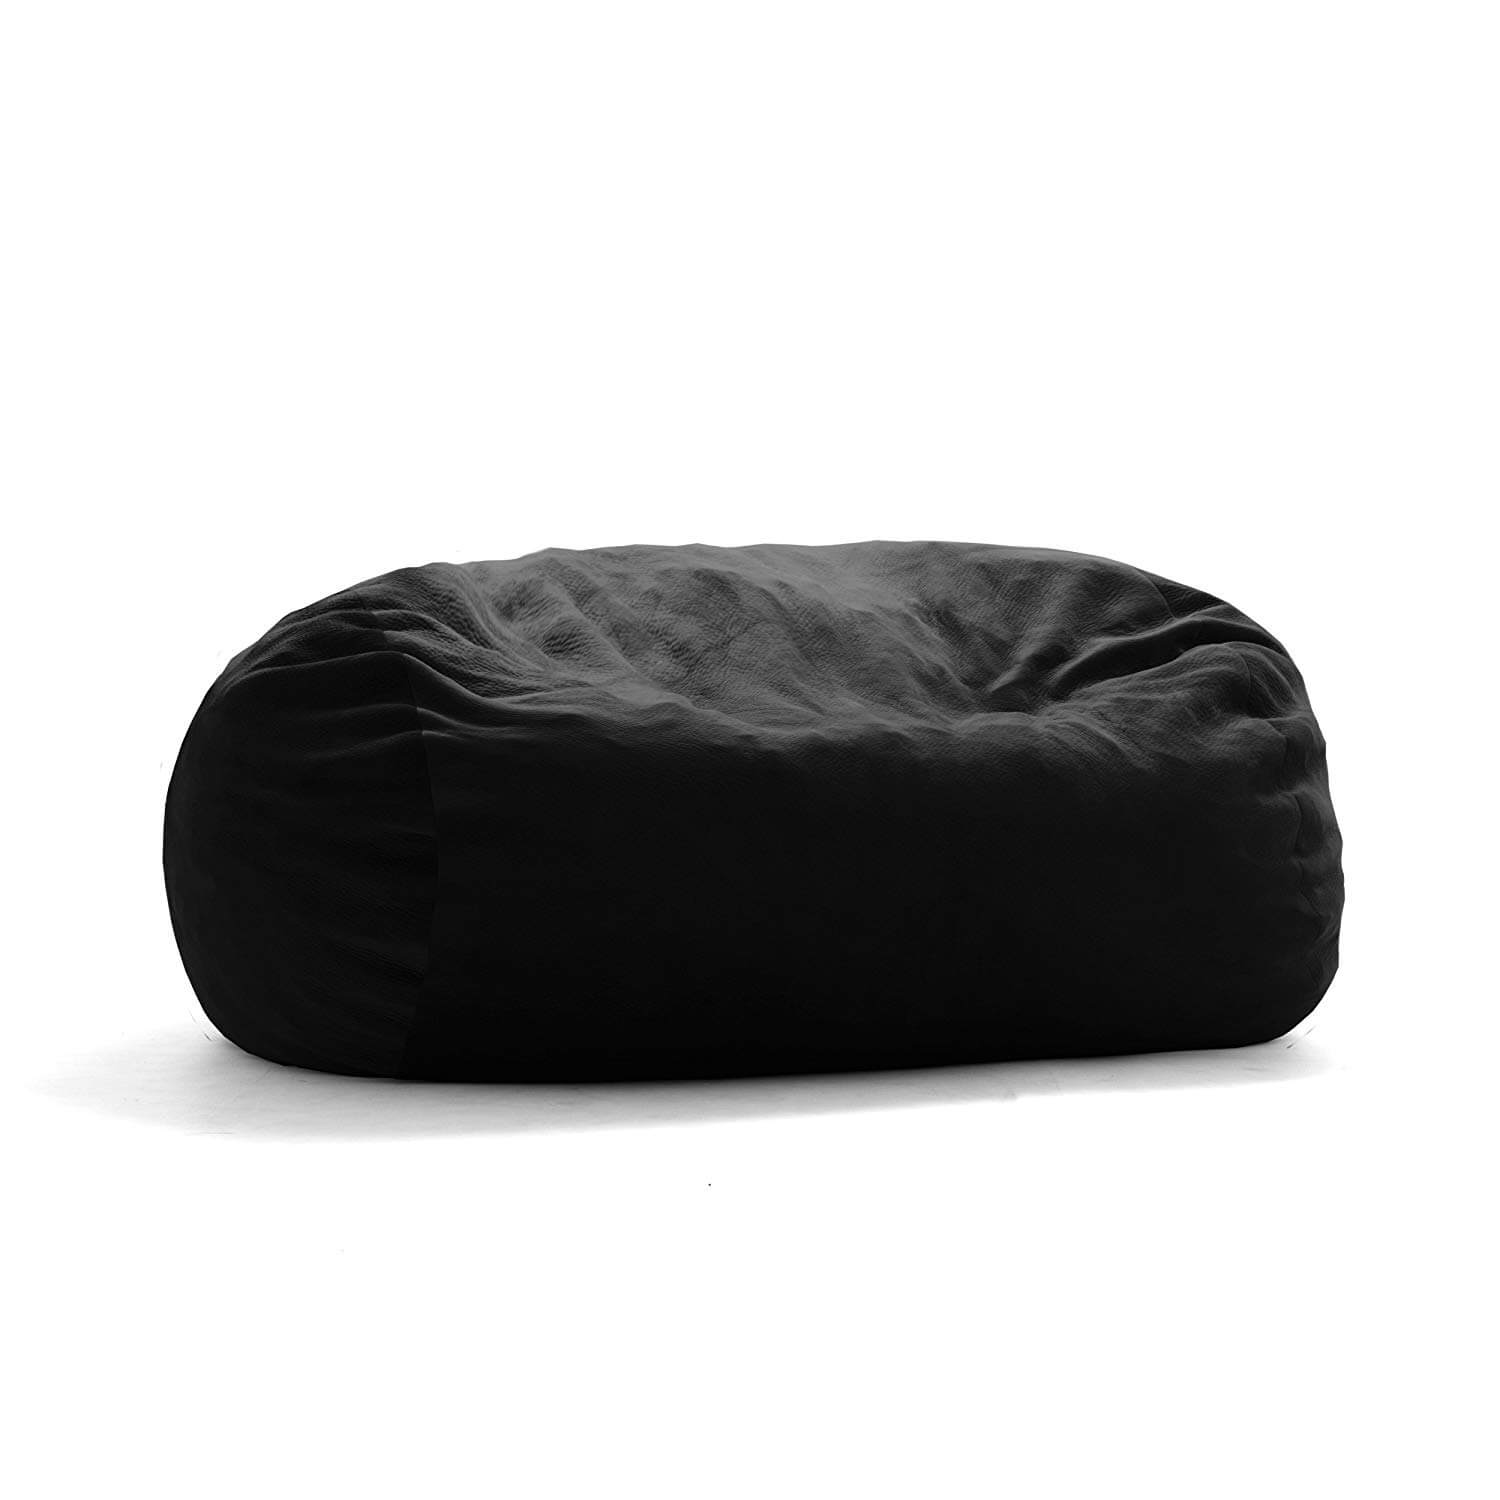 Fine Big Joe Bean Bag Xxl Fuf Chair Review Ibusinesslaw Wood Chair Design Ideas Ibusinesslaworg